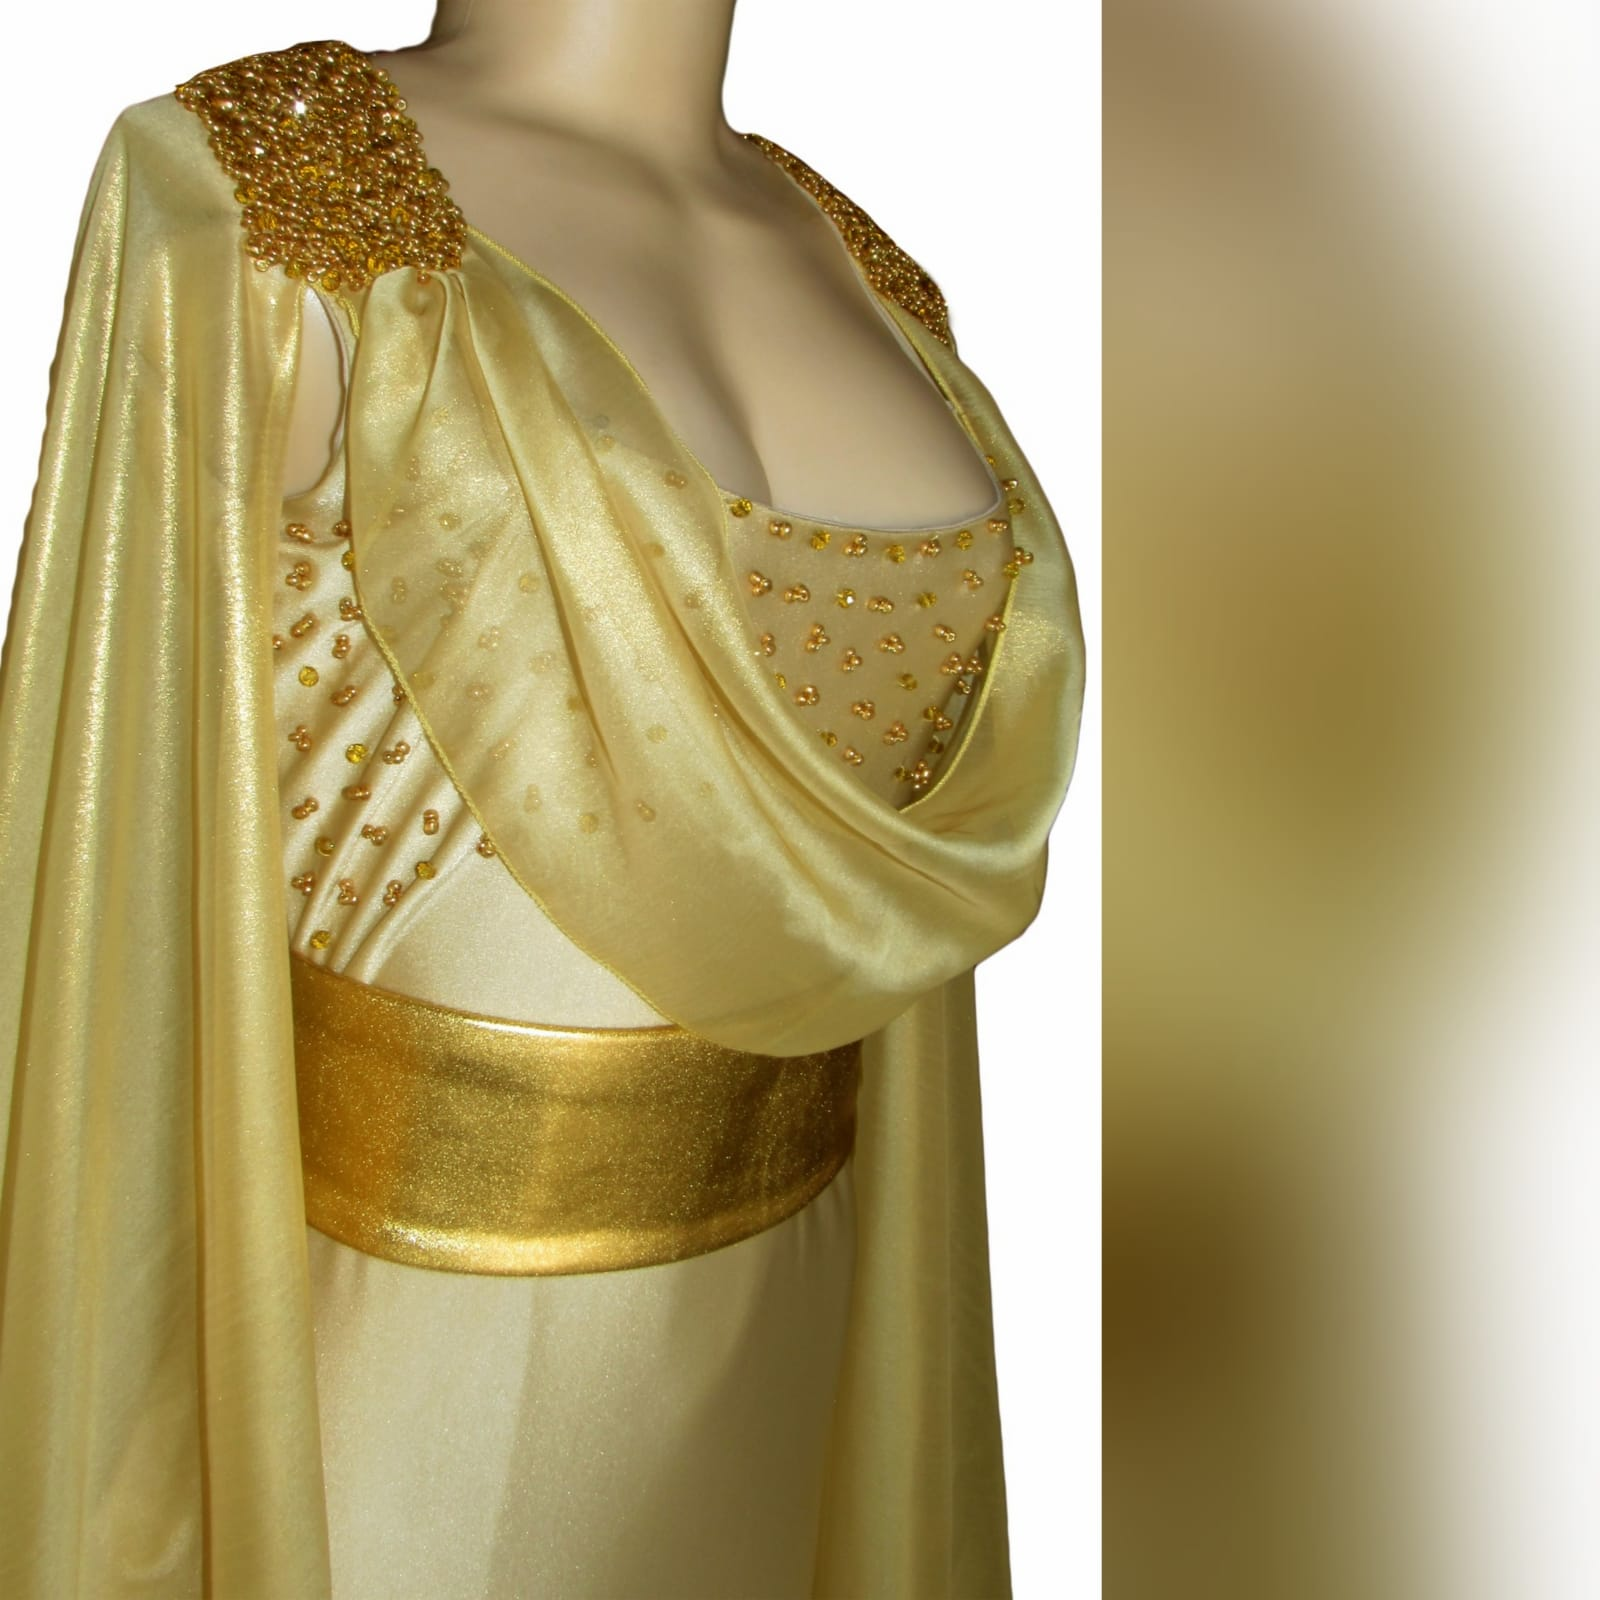 Gold long goddess inspired prom dress 5 gold long goddess inspired prom dress. Long fitted dress with a high slit and a train. With bust detailed with gold beads and a chiffon cowl neck, with a dramatic chiffon cape beaded on the shoulders. With a long train.